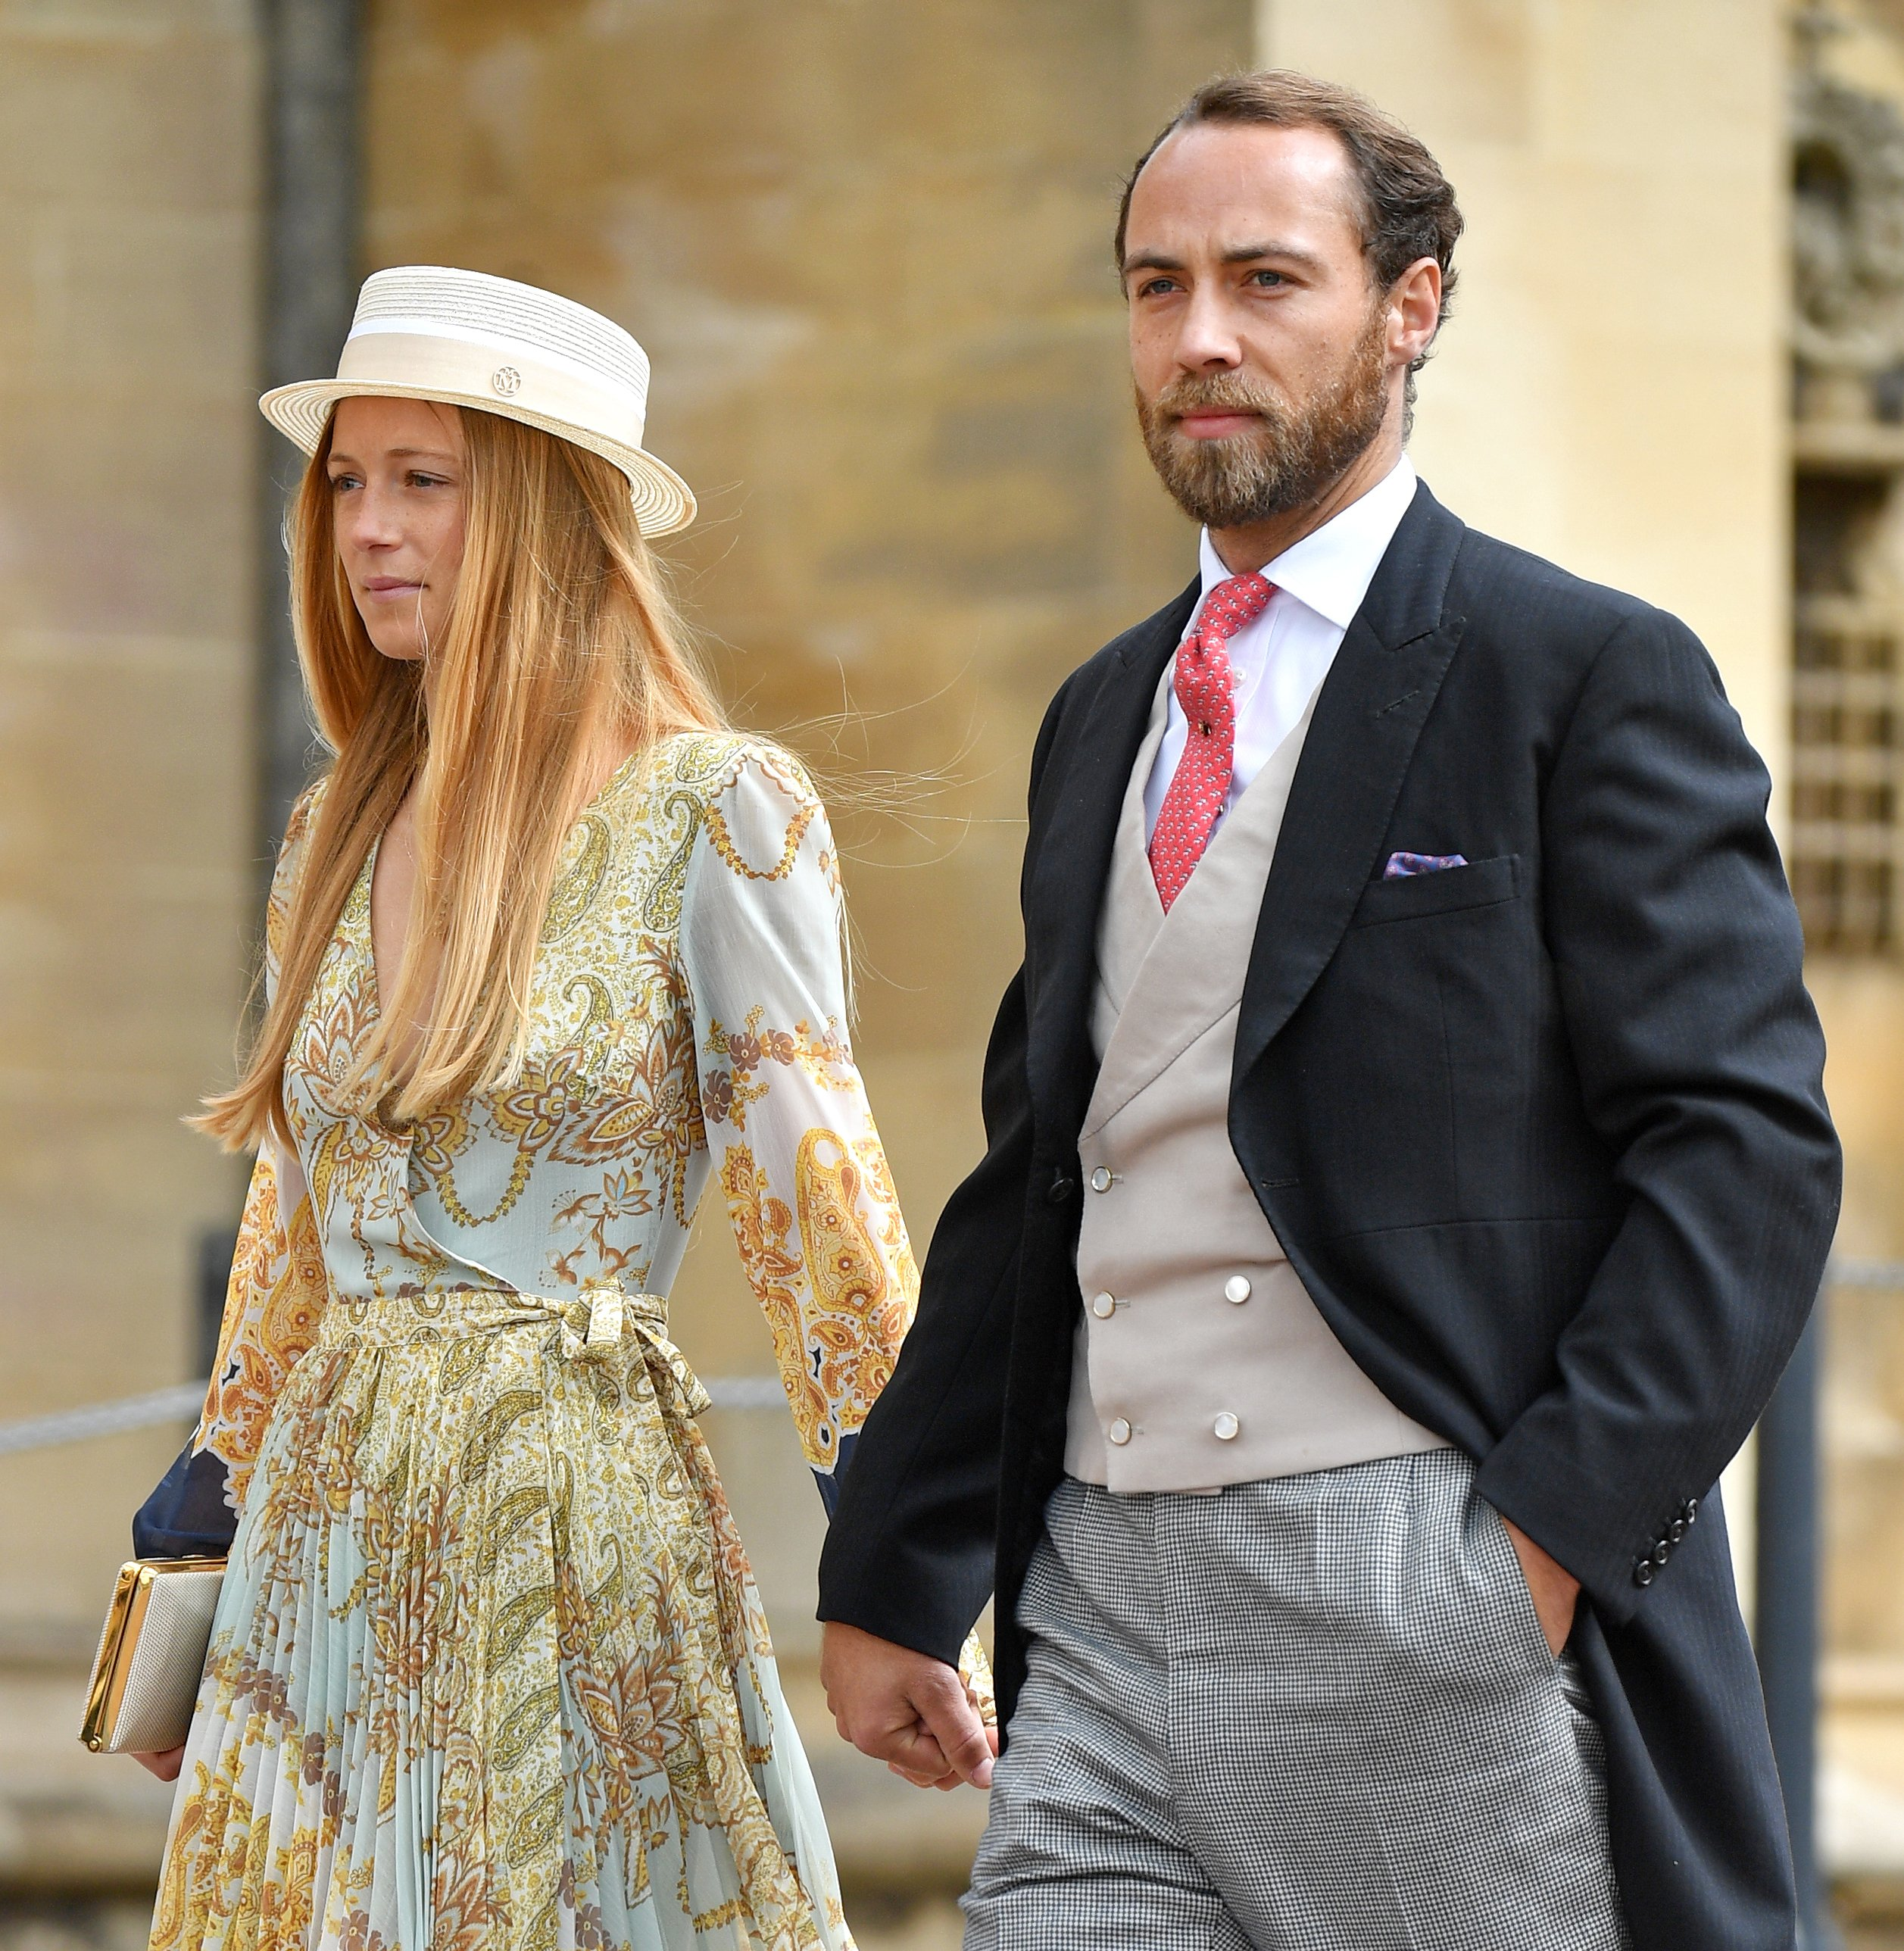 James Middleton and fiance Alizee Thevenet attend the wedding of Lady Gabriella and Thomas Kingston in 2019. | Photo: Getty Images